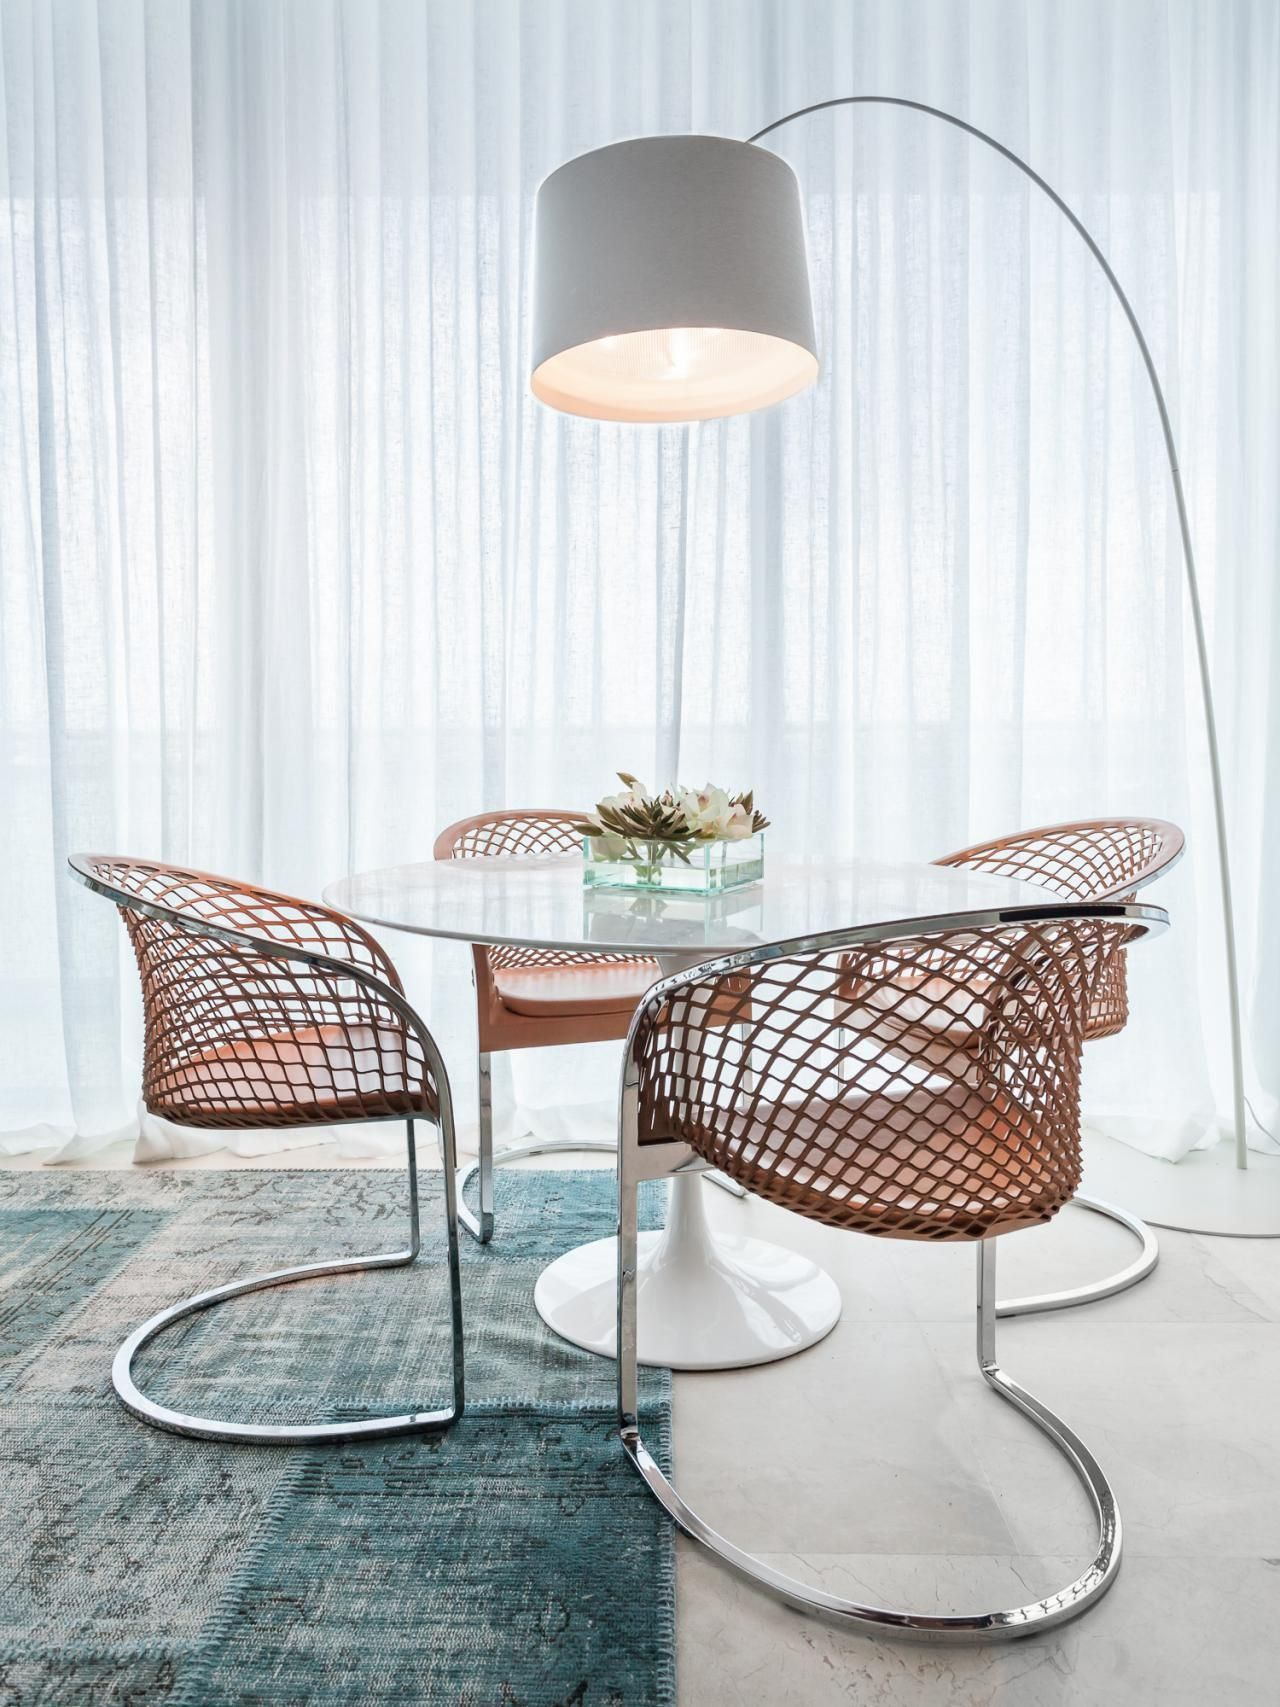 Illuminated Your House With An Arc Floor Lamp Dining Room Floor Lamp Dining Room Floor Arc Floor Lamps